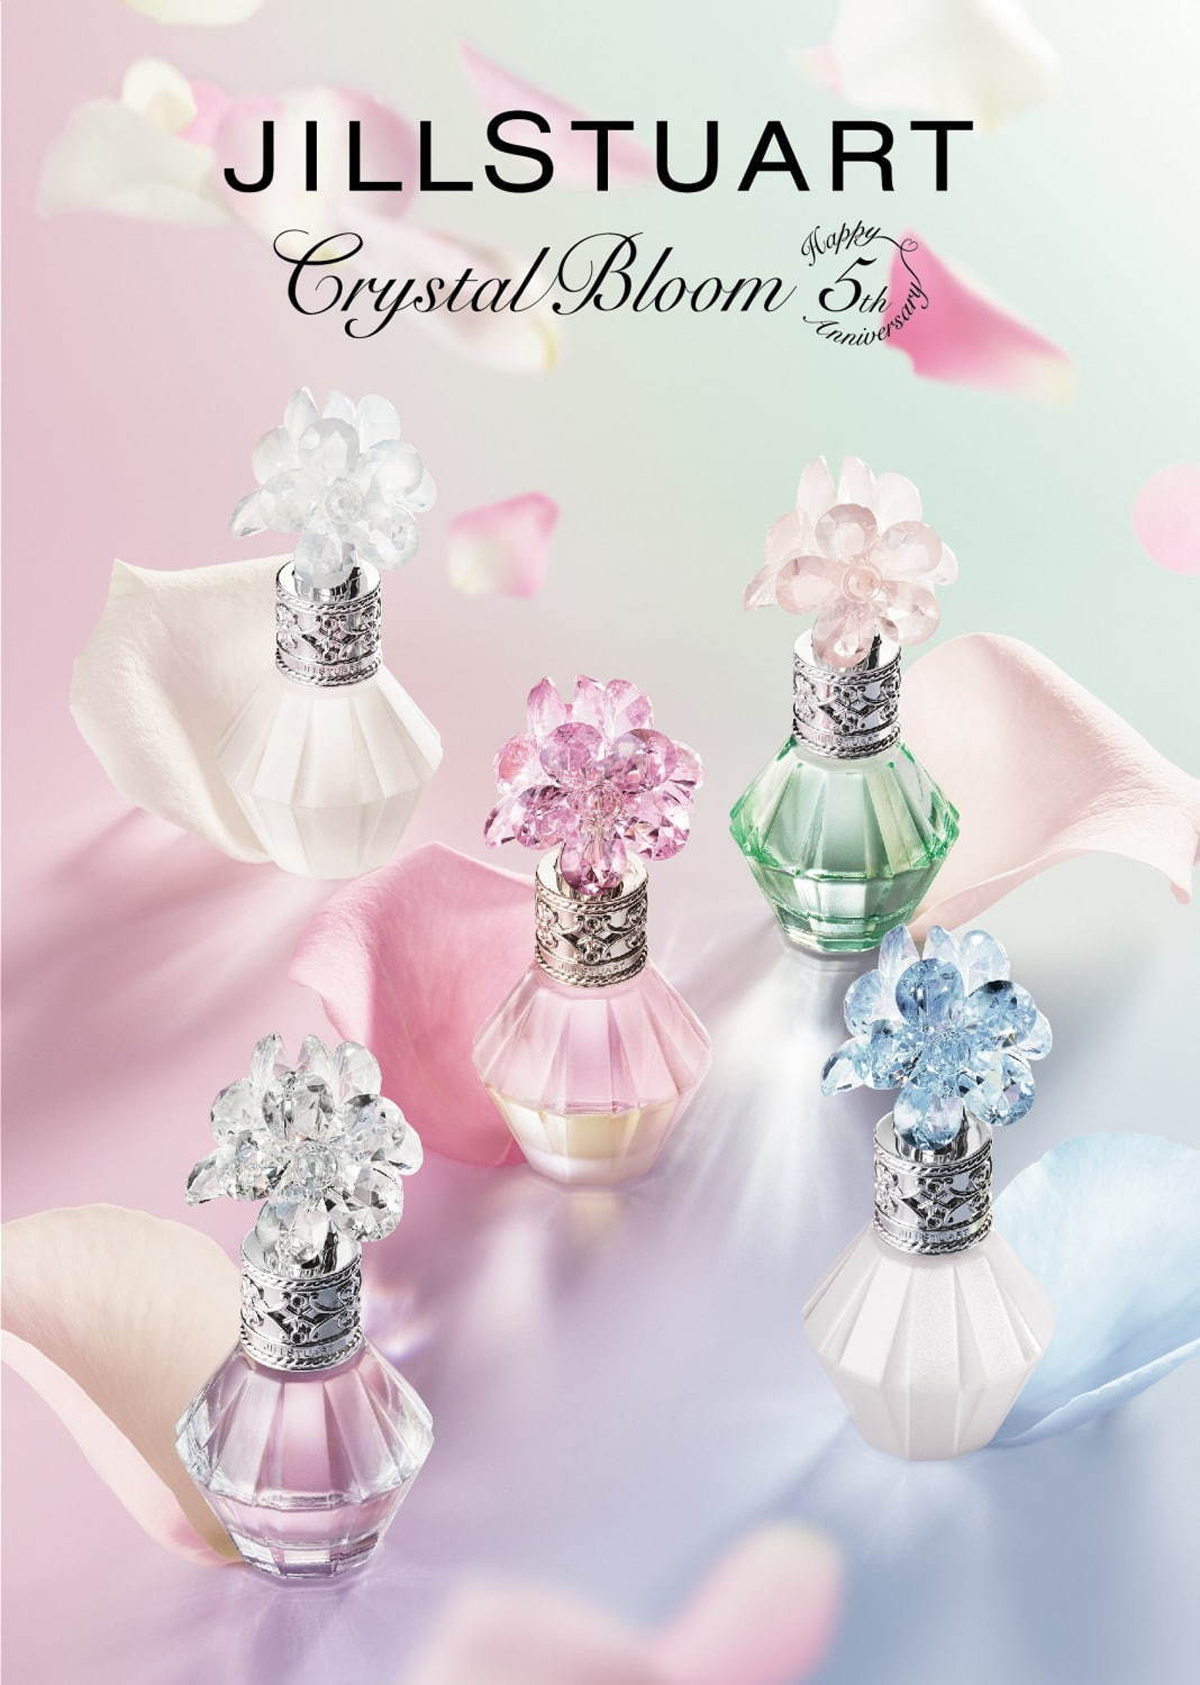 Jill-Stuart-Crystal-Bloom-Beloved-Charm-Banner-02.jpg